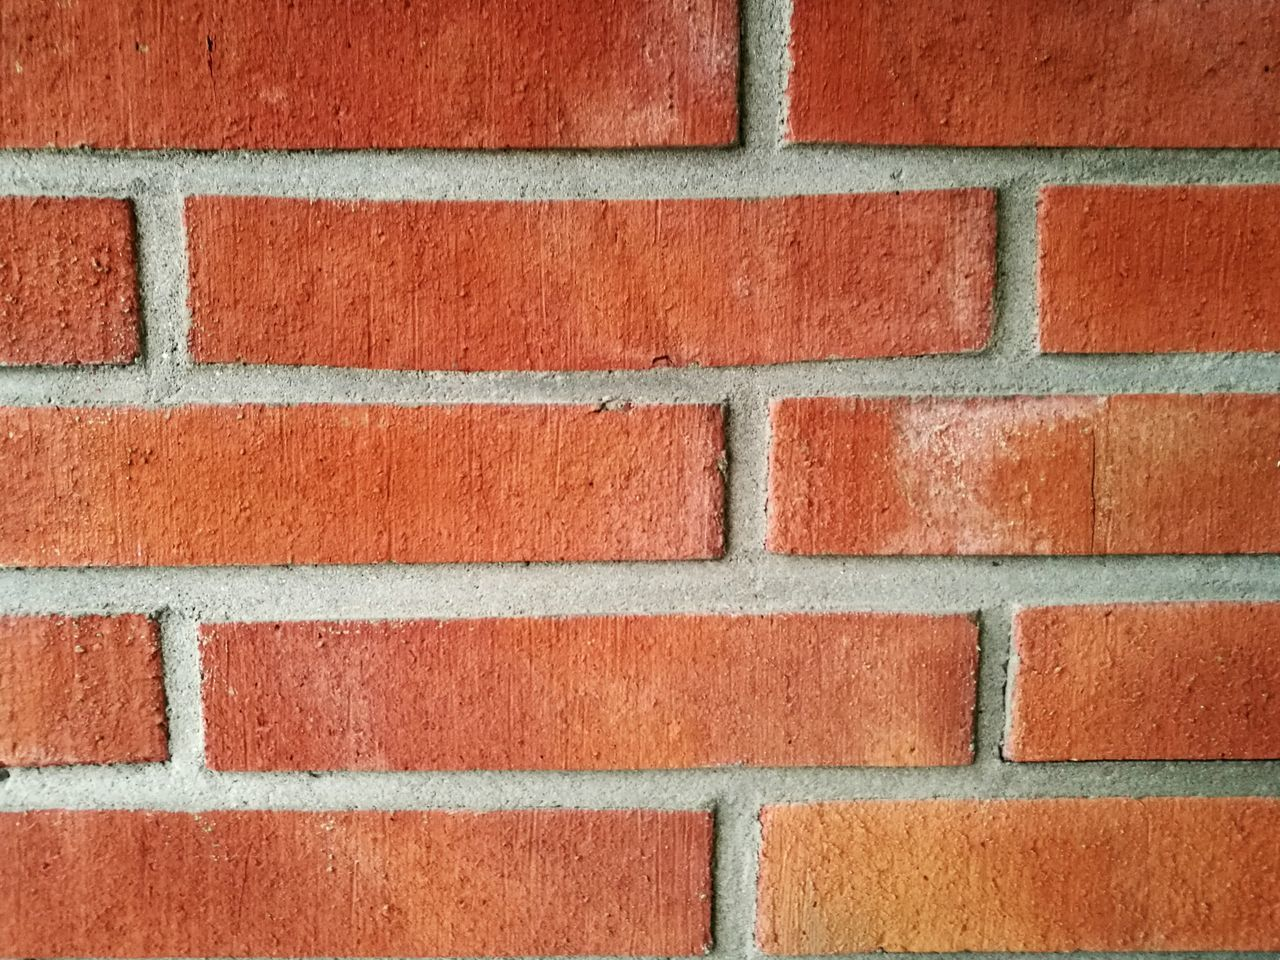 Wall - Building Feature Full Frame Brick Wall Pattern Backgrounds Built Structure No People Outdoors Close-up Red Textured  Building Exterior